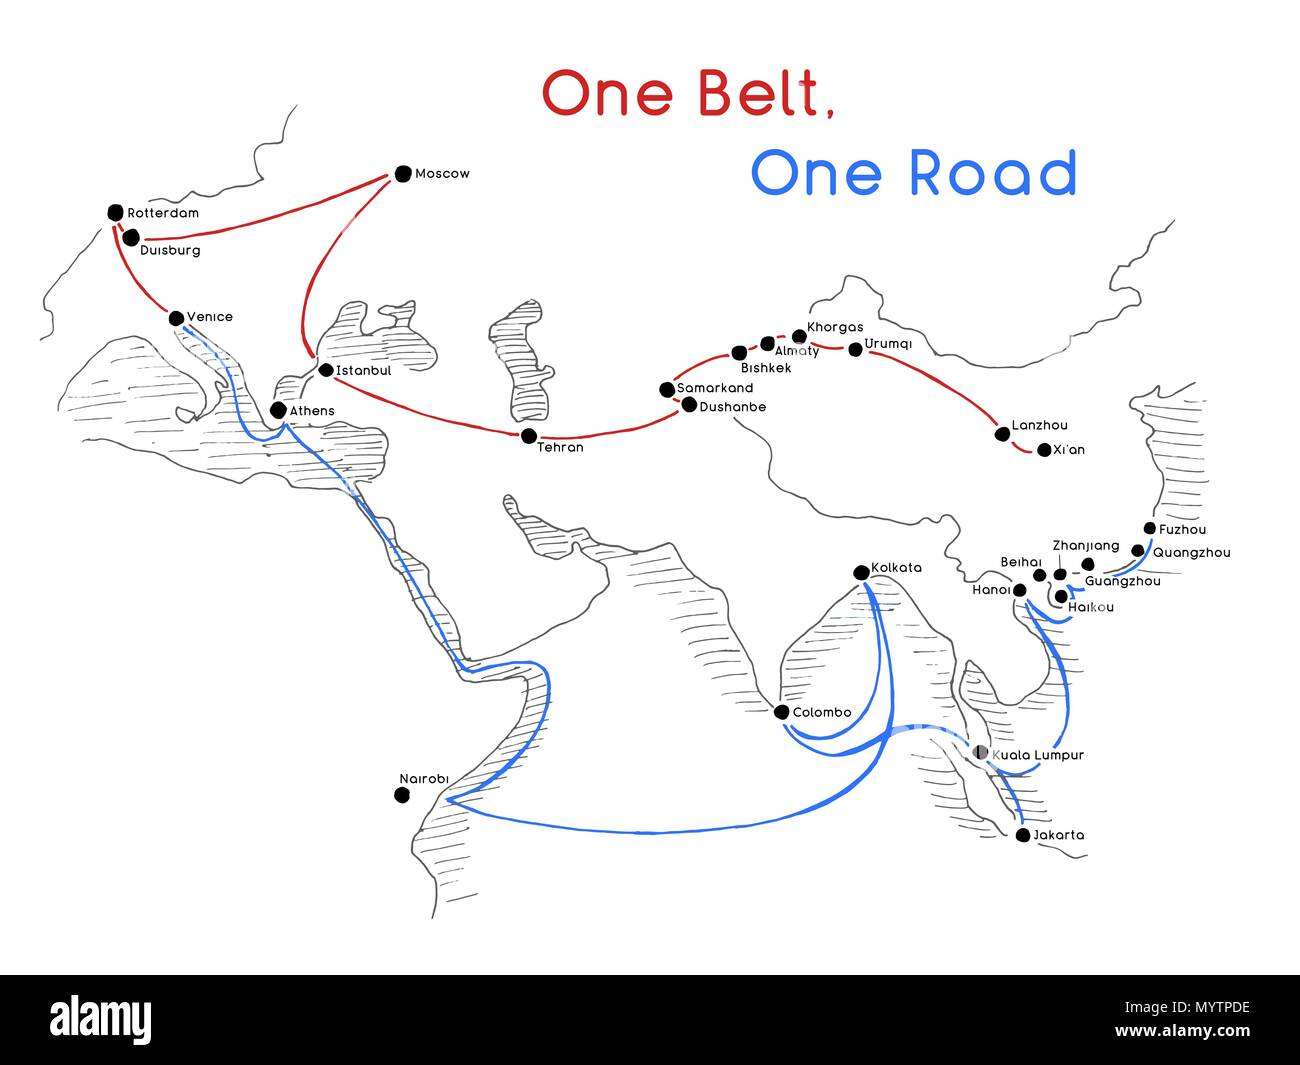 One Belt One Road new Silk Road concept. 21st-century connectivity and cooperation between Eurasian countries. Vector illustration. - Stock Vector